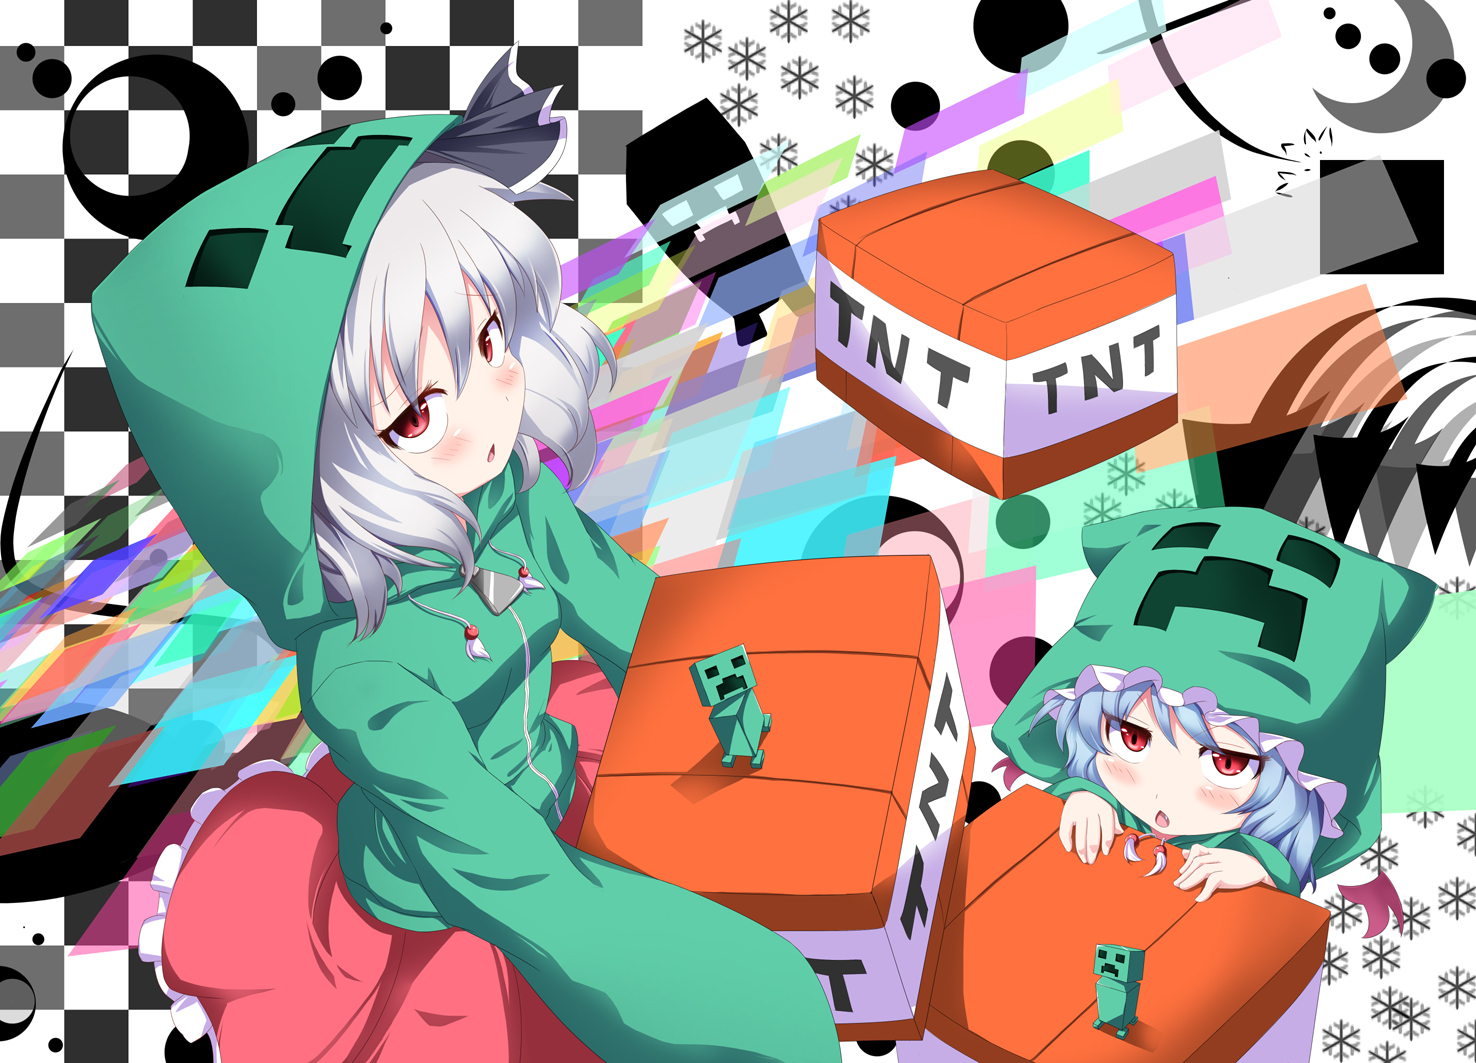 Must see Wallpaper Minecraft Anime - Touhou  Gallery_23488.jpg